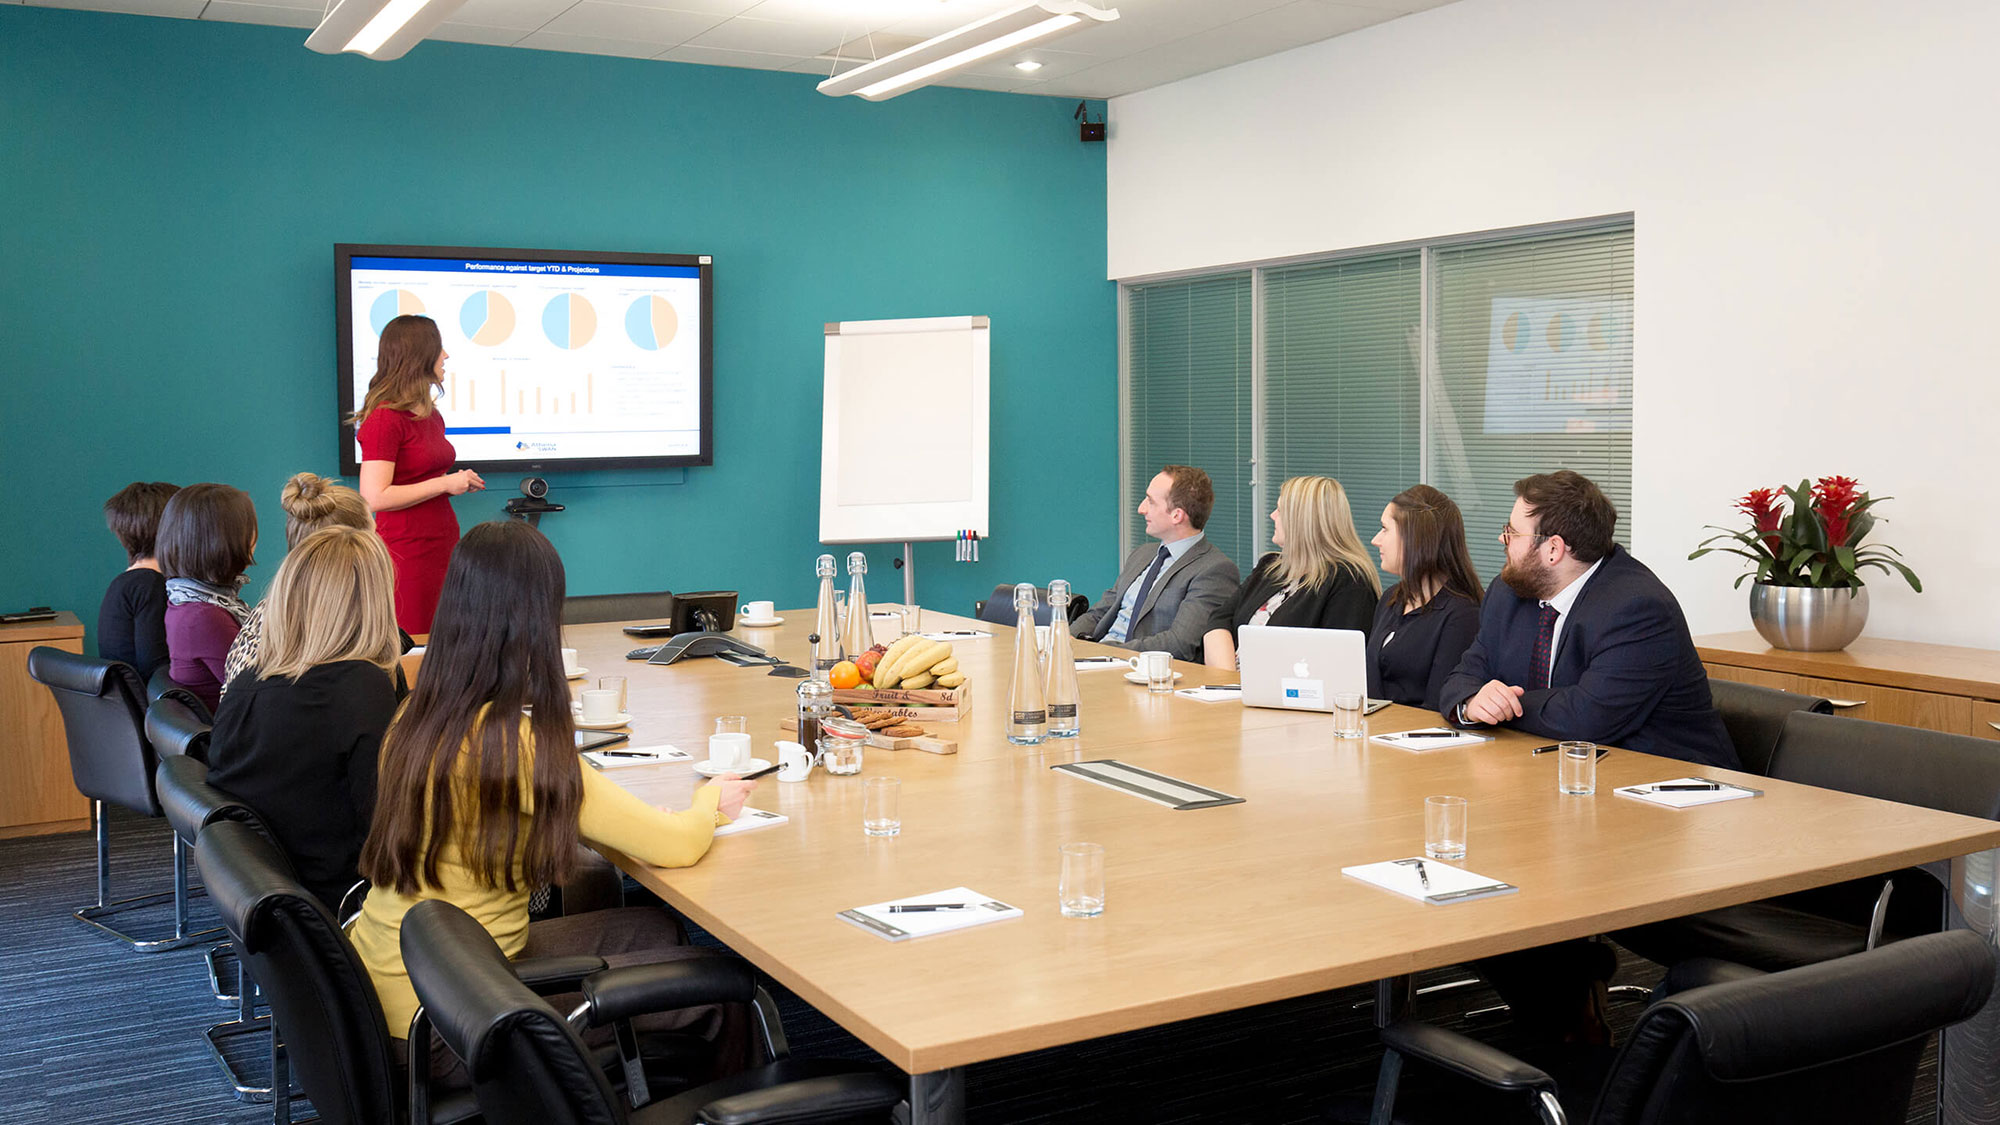 Employee presenting in front of colleagues in a meeting room